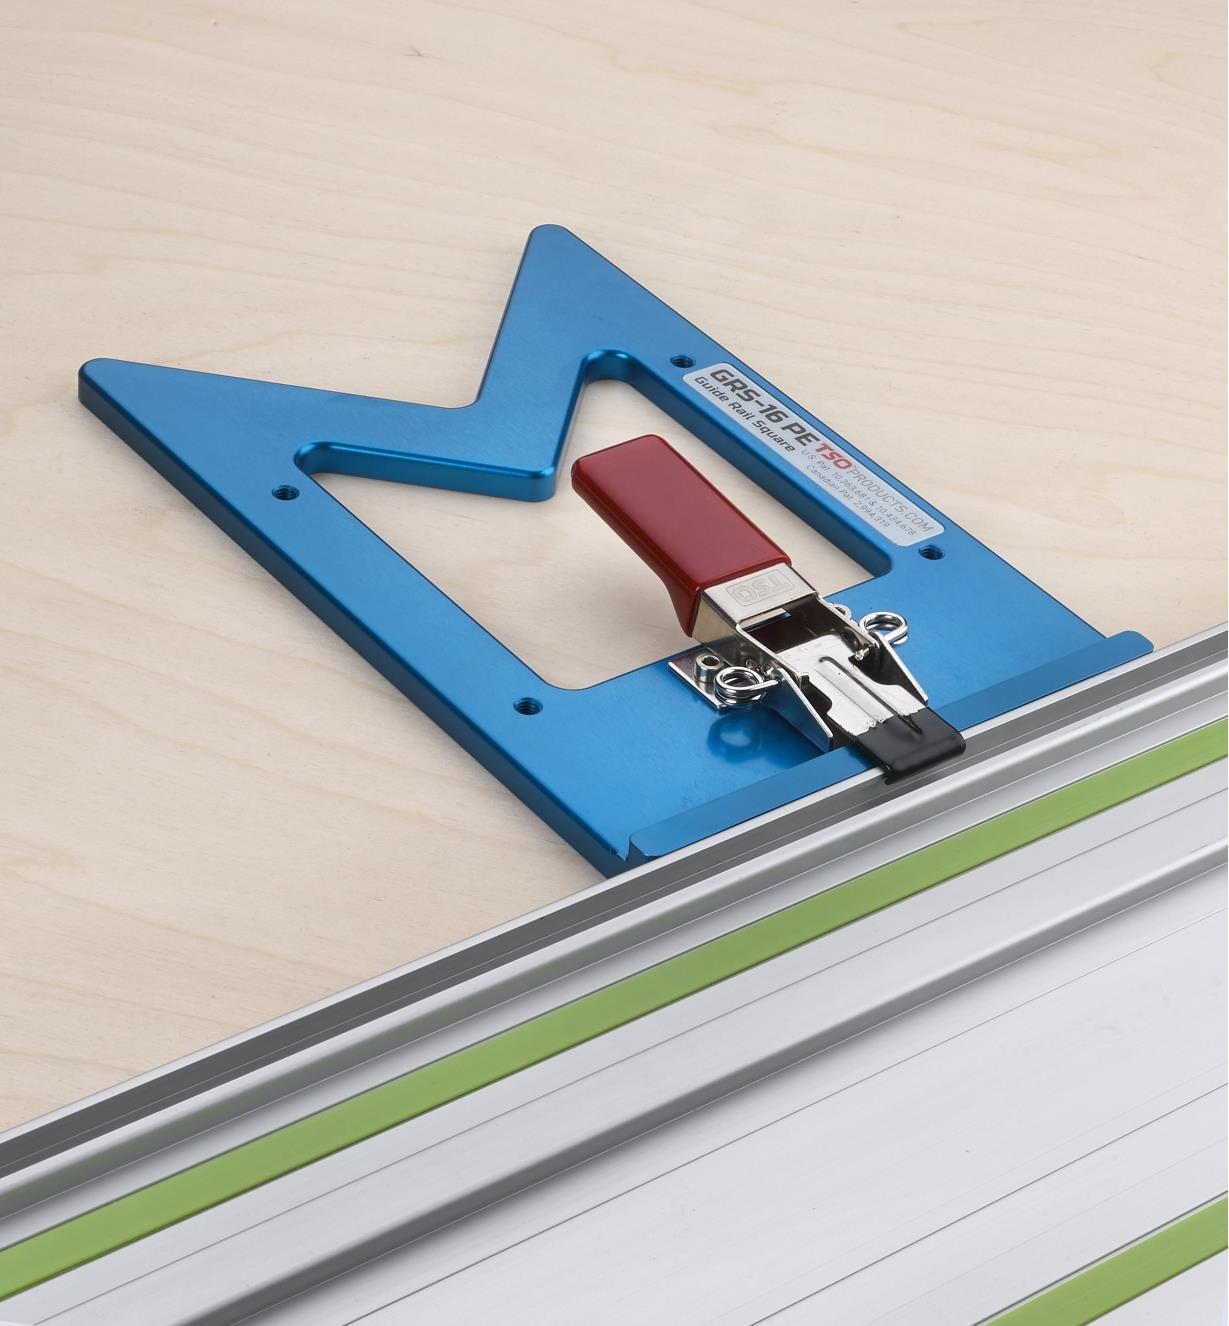 A view of the GRS-16 PE guide rail square showing the draw clamp used to mount it on a guide rail